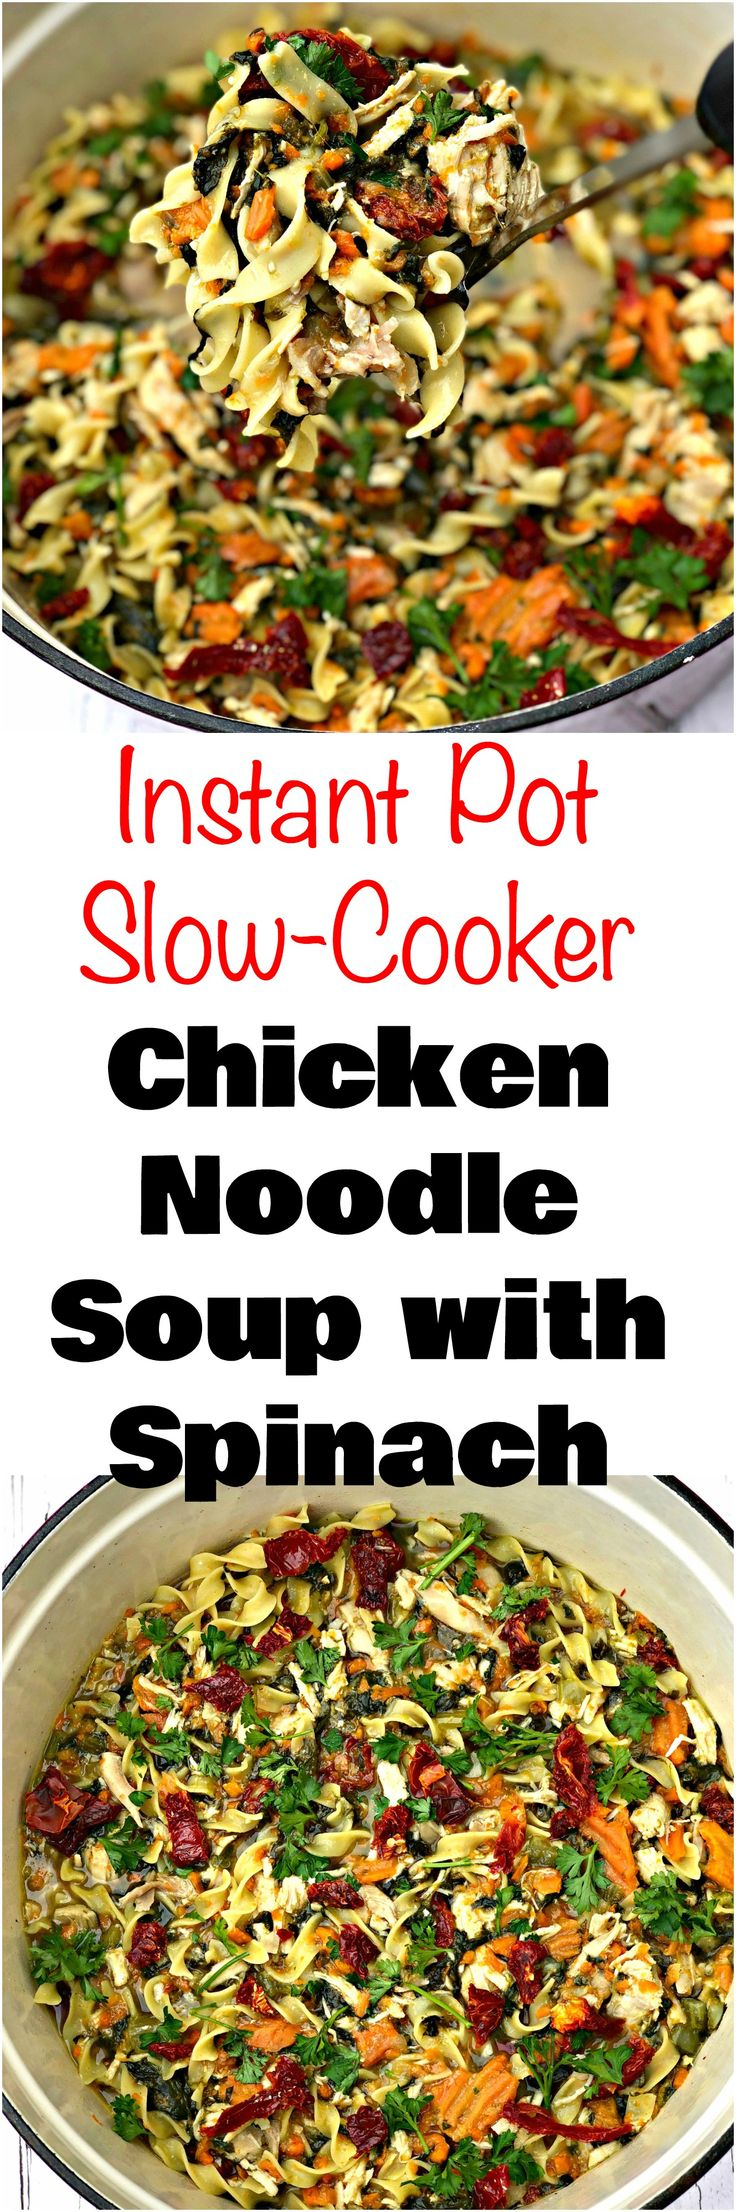 Instant Pot Slow Cooker Chicken Noodle Soup with Spinach is an easy, healthy, pressure cooker, crockpot recipe with Better Than Bouillon Chicken Base and sun-dried tomatoes. #InstantPot #InstantPotRecipes #ChickenRecipes #ChickenNoodleSoup #SlowCooker #SlowCookerRecipes #CrockPot #CrockPotRecipes #HealthyRecipes #Soups #FallRecipes